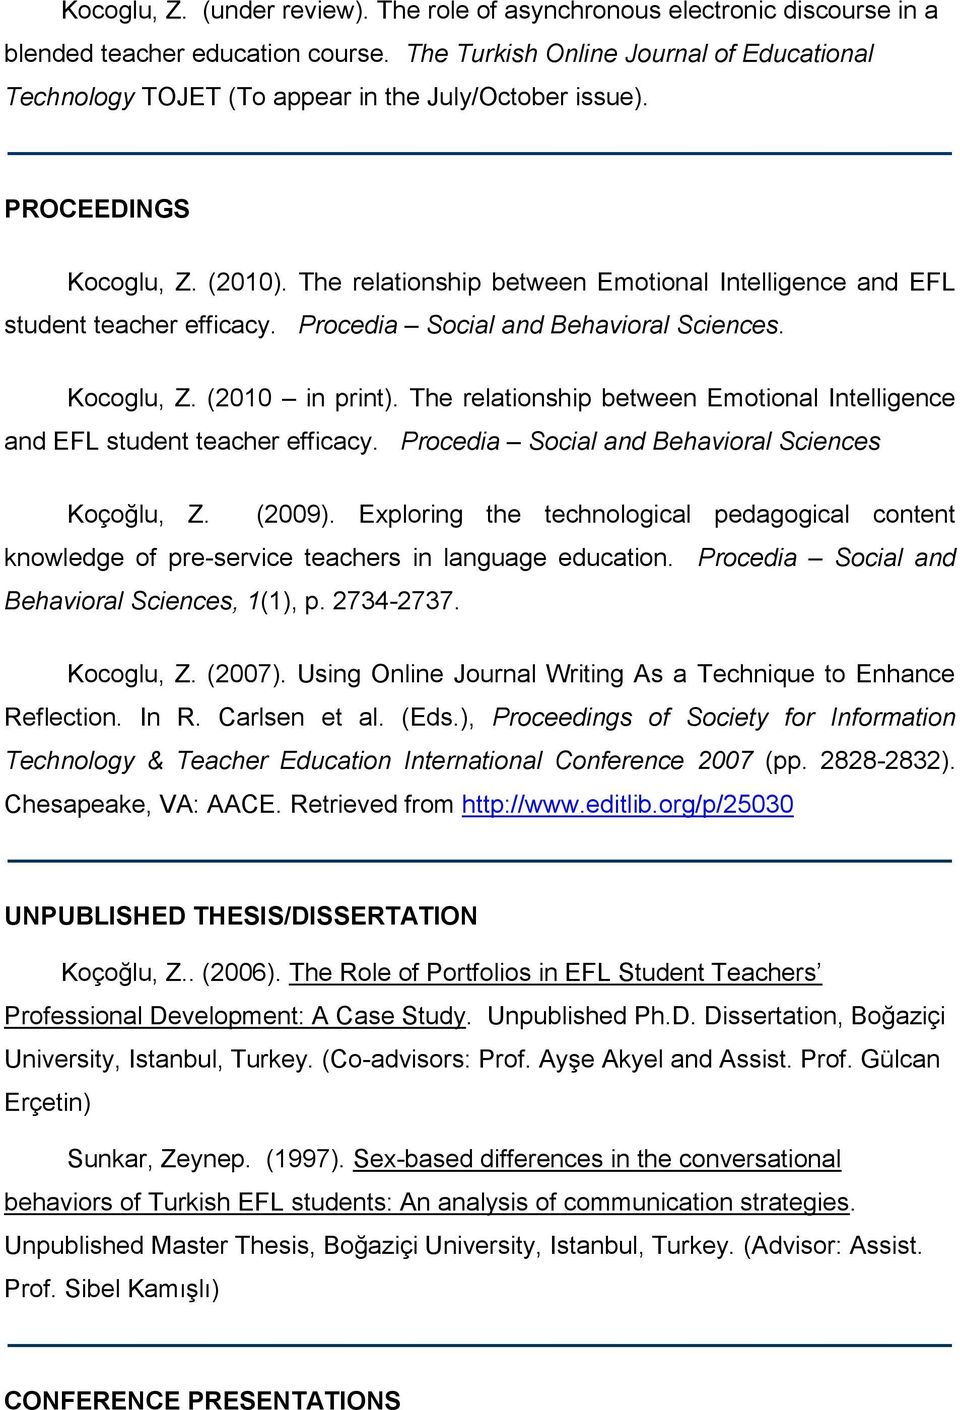 The relationship between Emotional Intelligence and EFL student teacher efficacy. Procedia Social and Behavioral Sciences. Kocoglu, Z. (2010 in print).